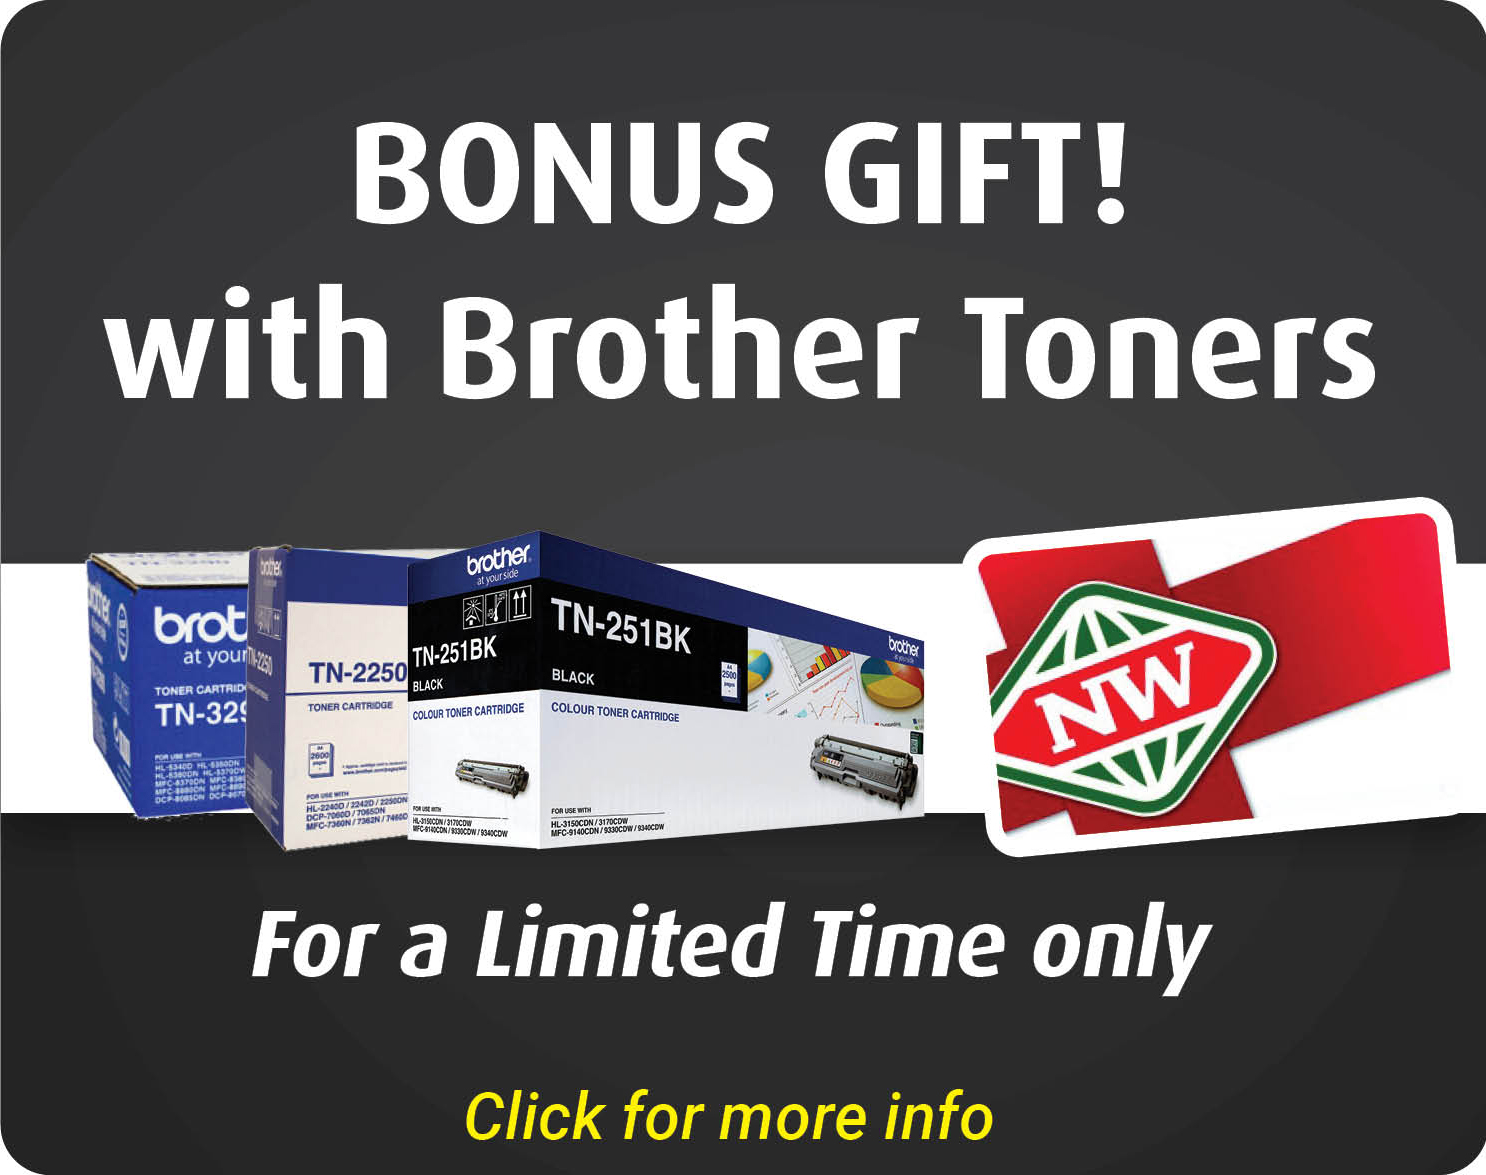 BD Brother toner Front page